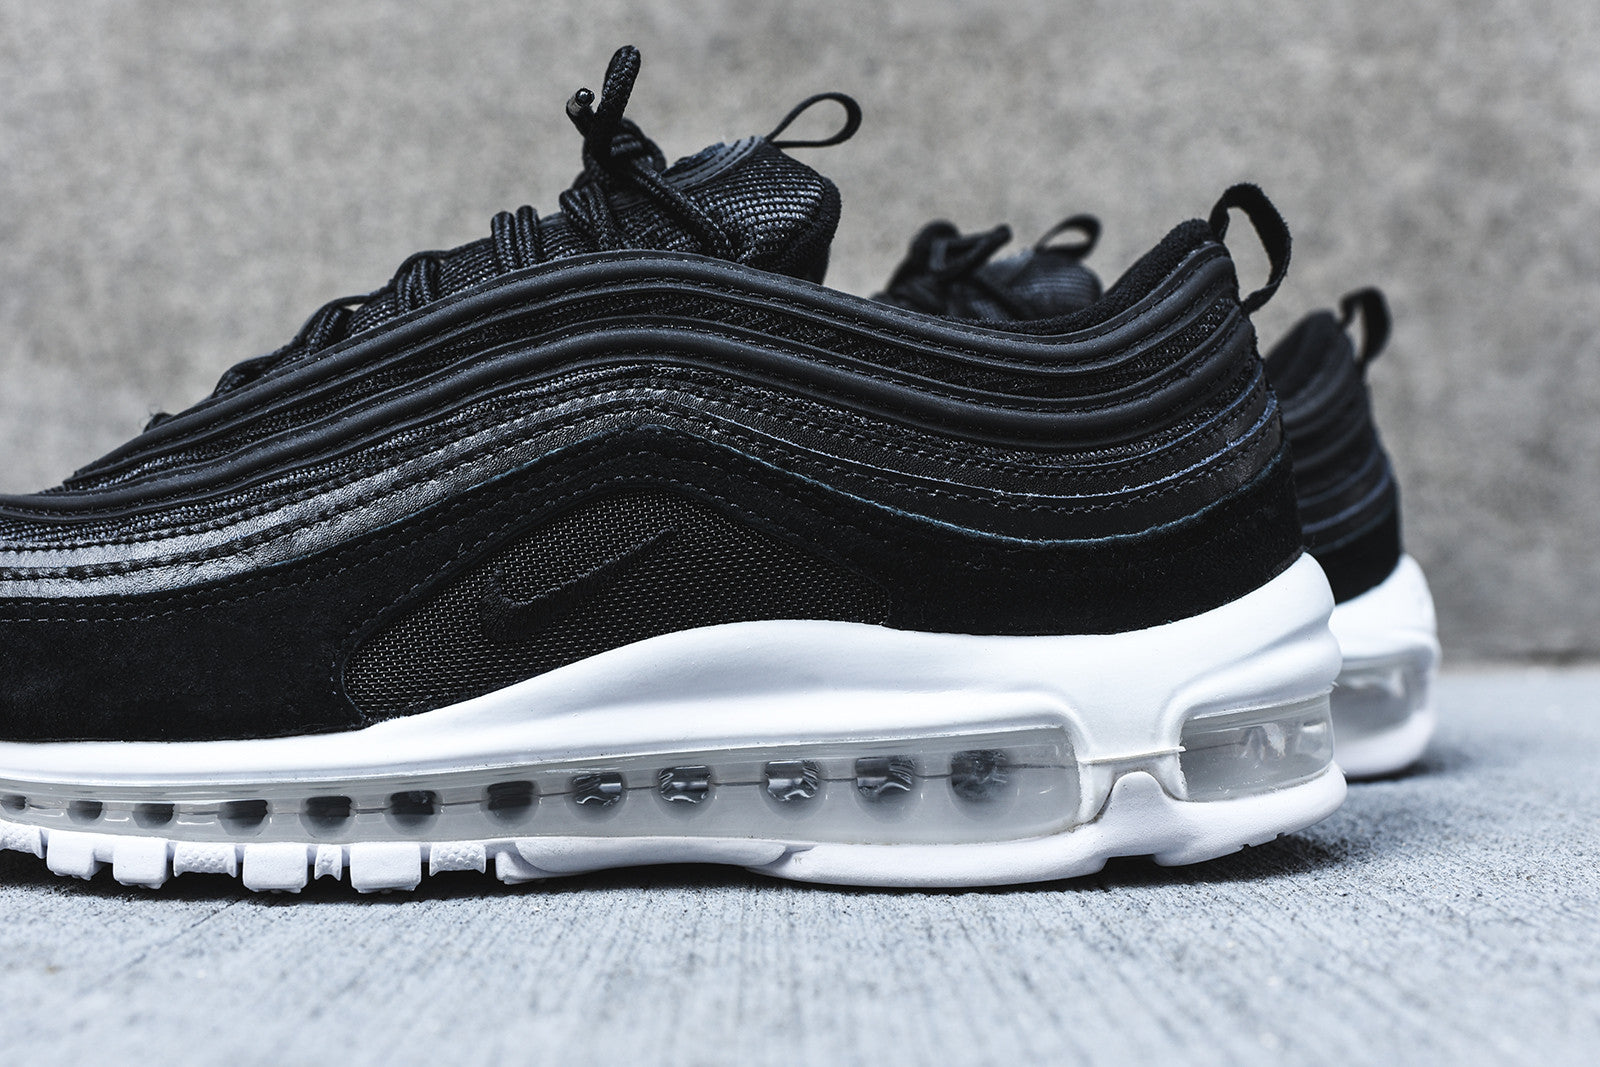 8389b31ed5e152 Nike Air Max 97 PRM Pack. August 01